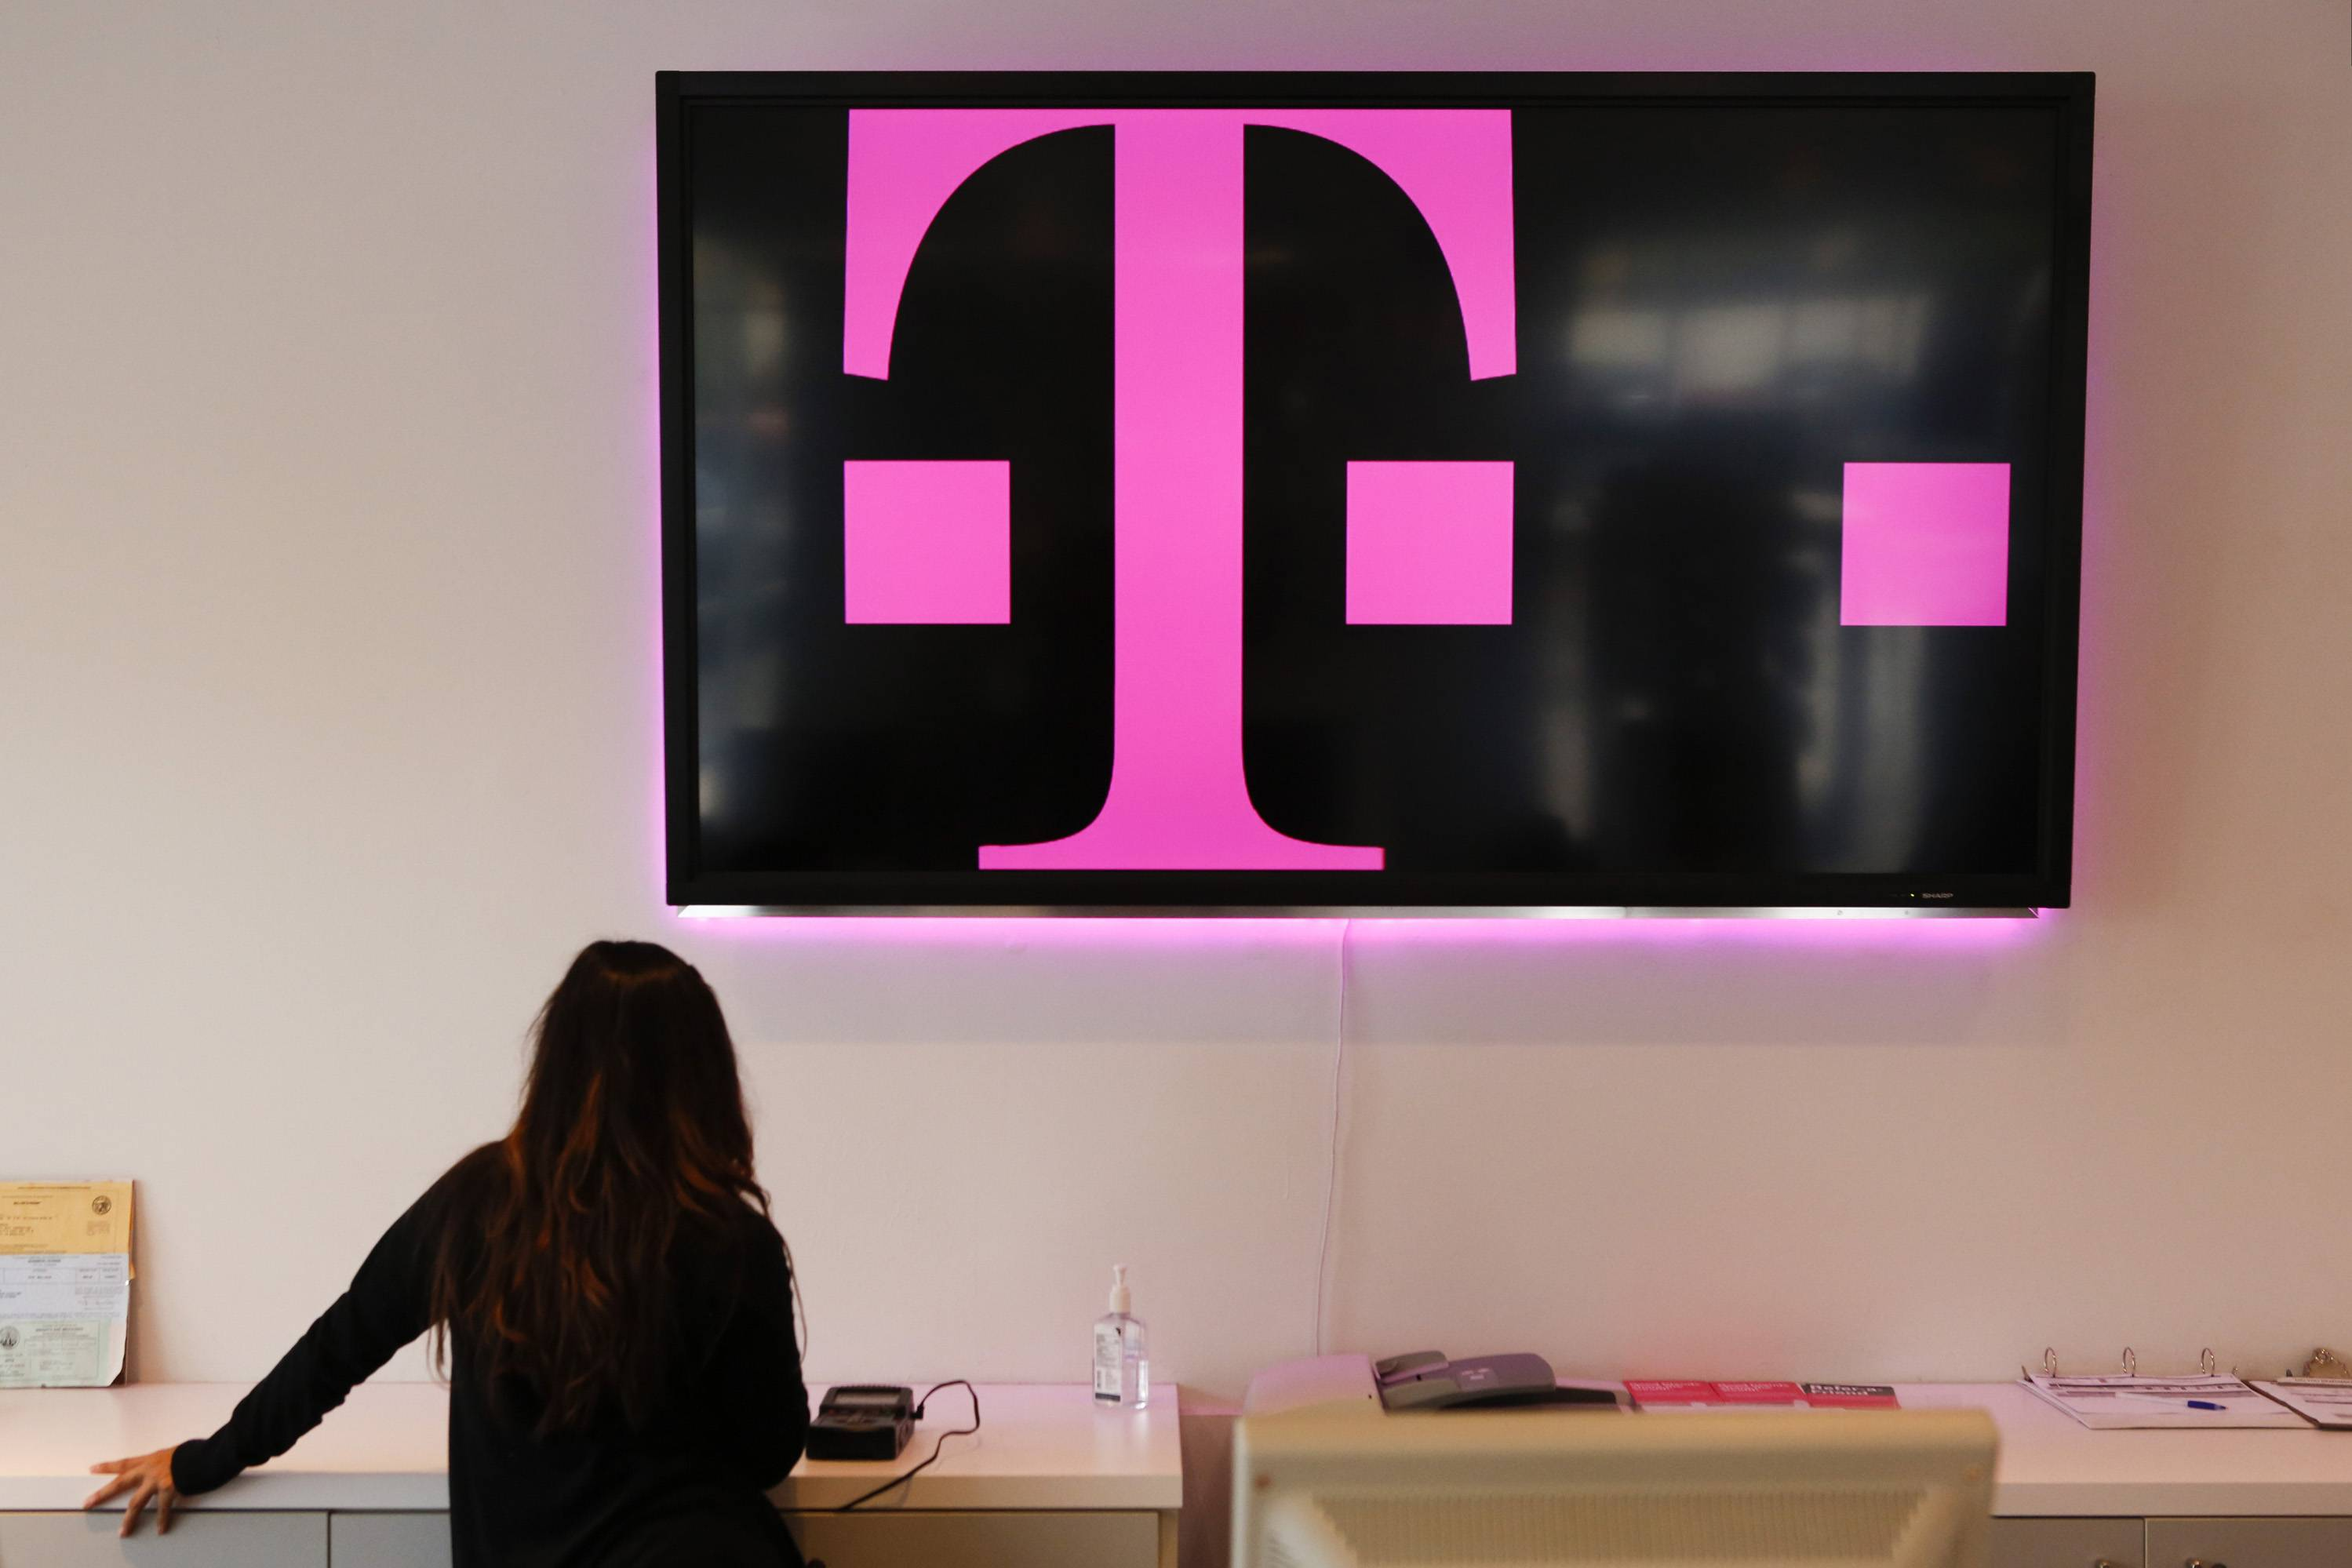 In the latest merger-in-the-making, Sprint Corp. has proposed acquiring scrappy underdog carrier T-Mobile US Inc. in a deal valued at about $31 billion. That would leave just three major players in the U.S. mobile-phone market — an understandable concern for regulators, who seem likely to block the merger in the name of encouraging low prices and preserving competition.